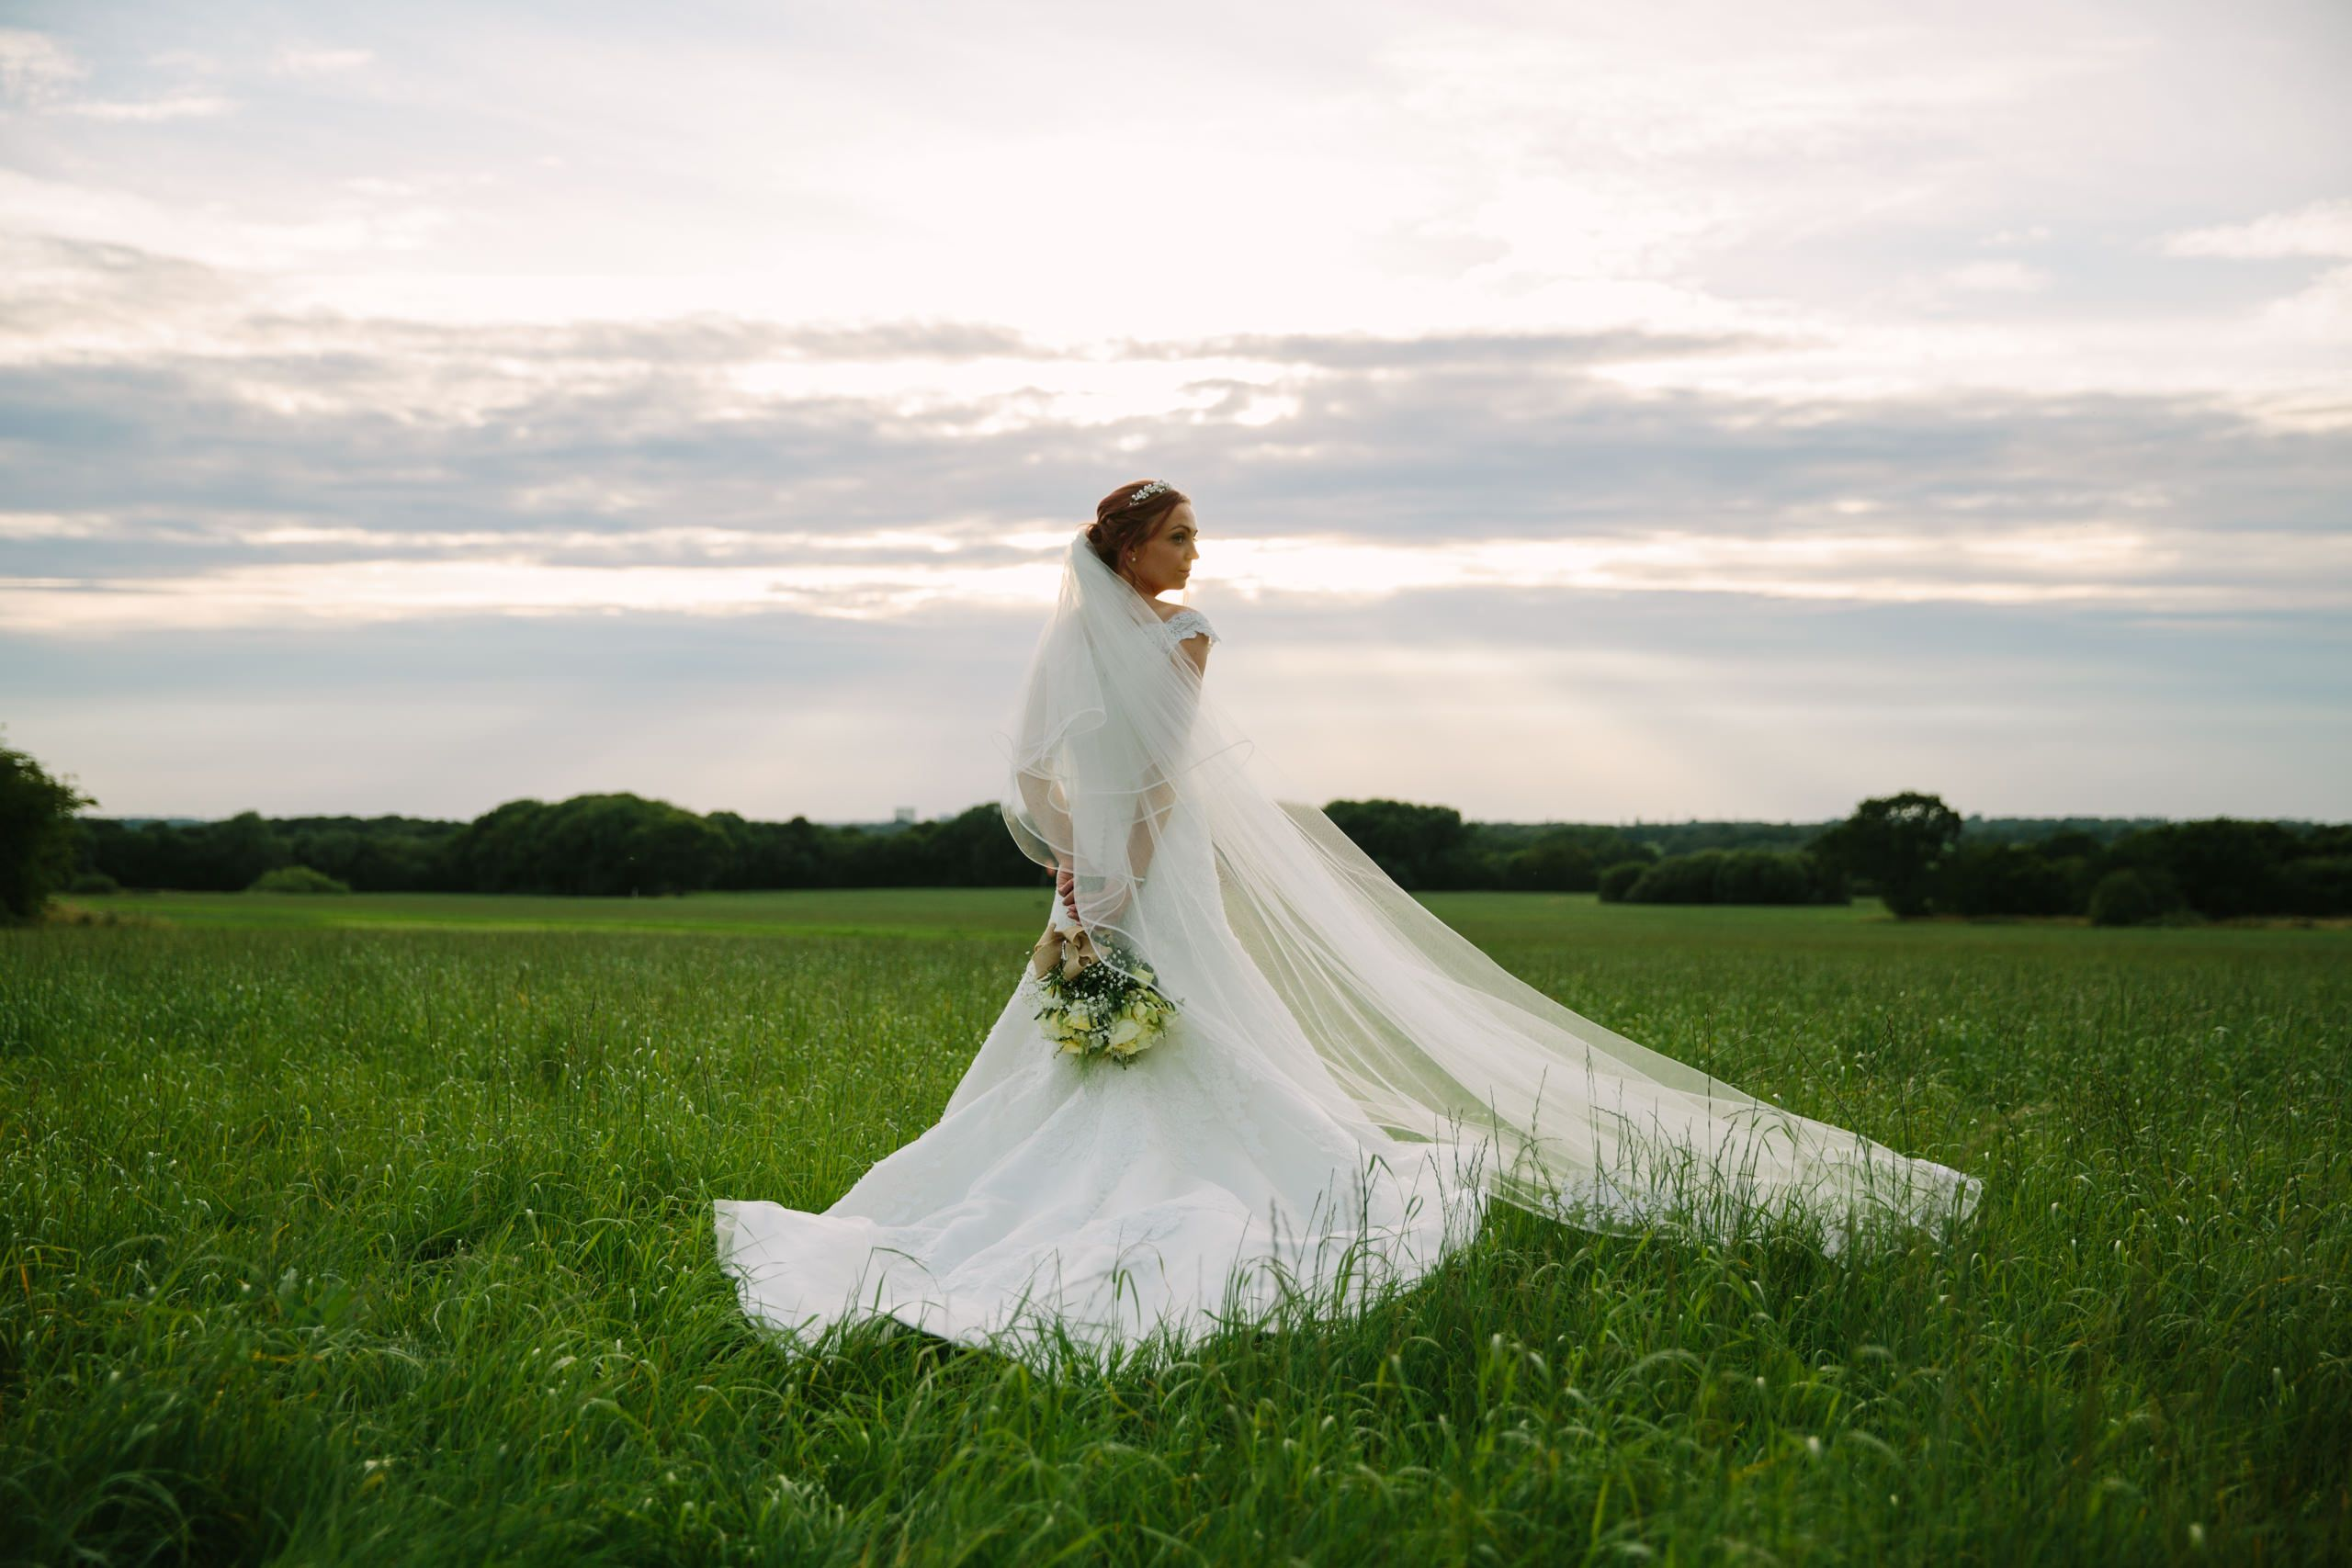 Sunlight steaming from the evening sky. #bride #sunset #portrait ...